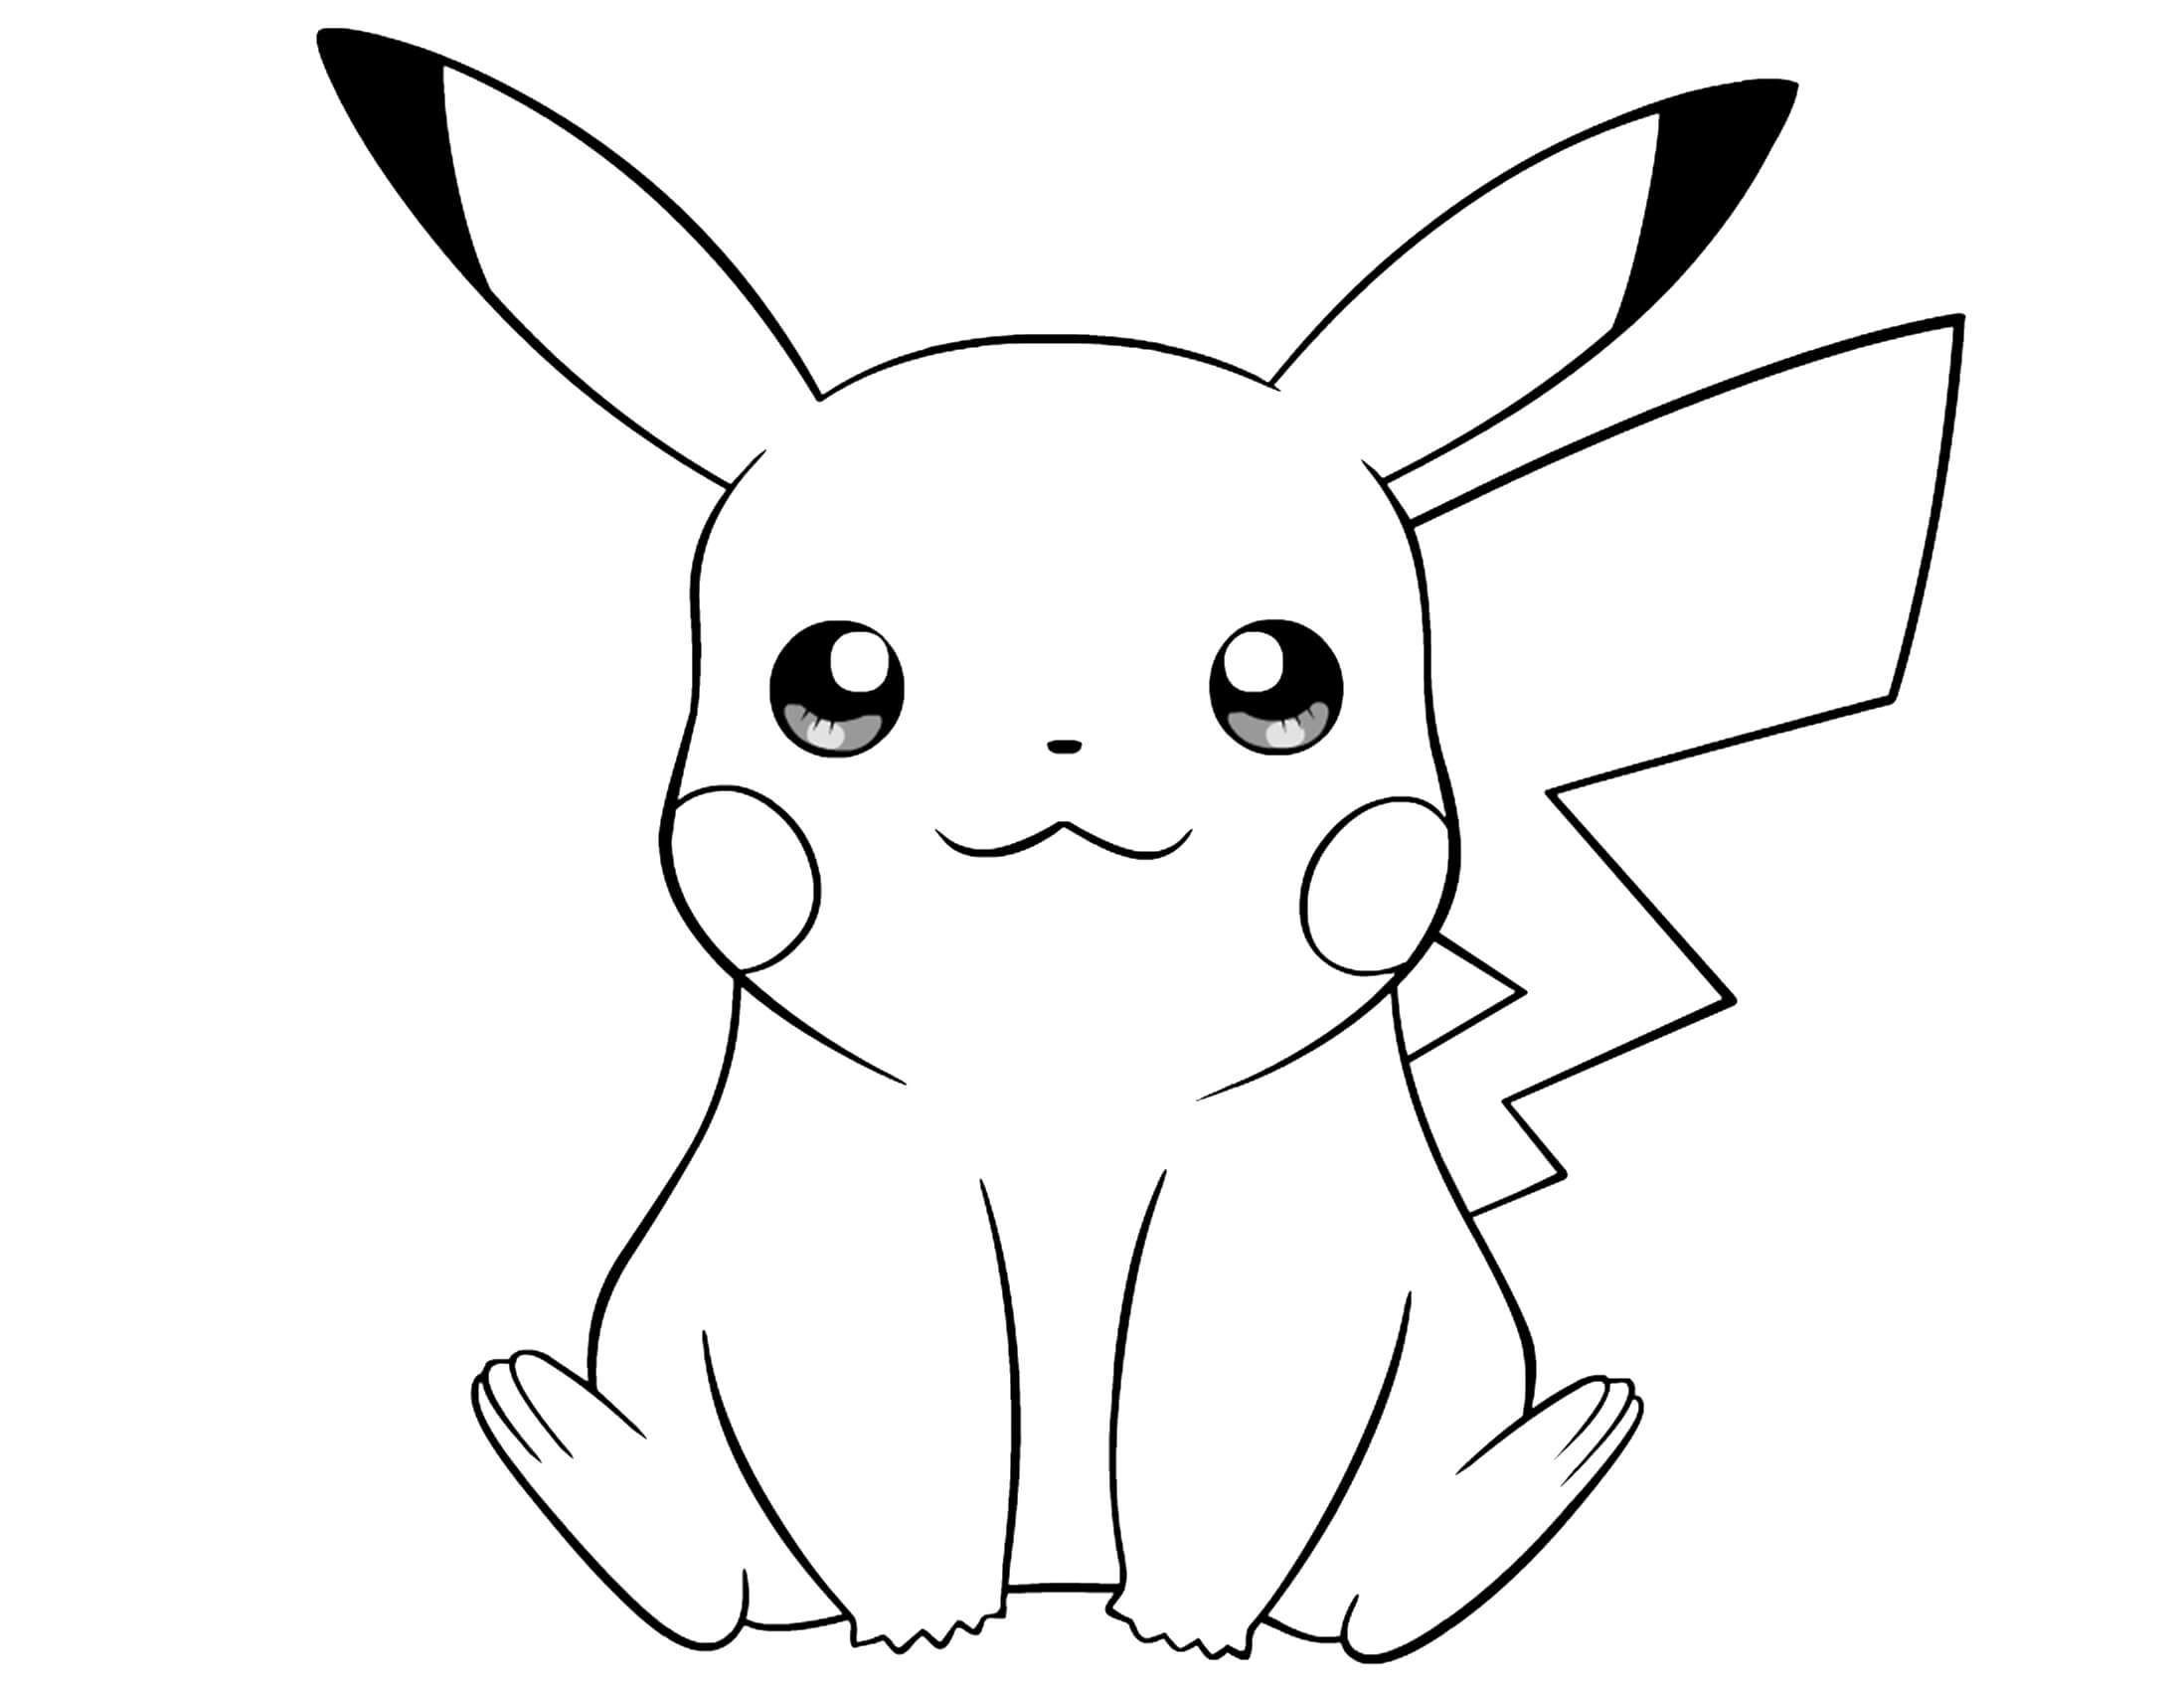 coloring pages of pikachu pikachu dancing coloring page free printable coloring coloring pikachu pages of